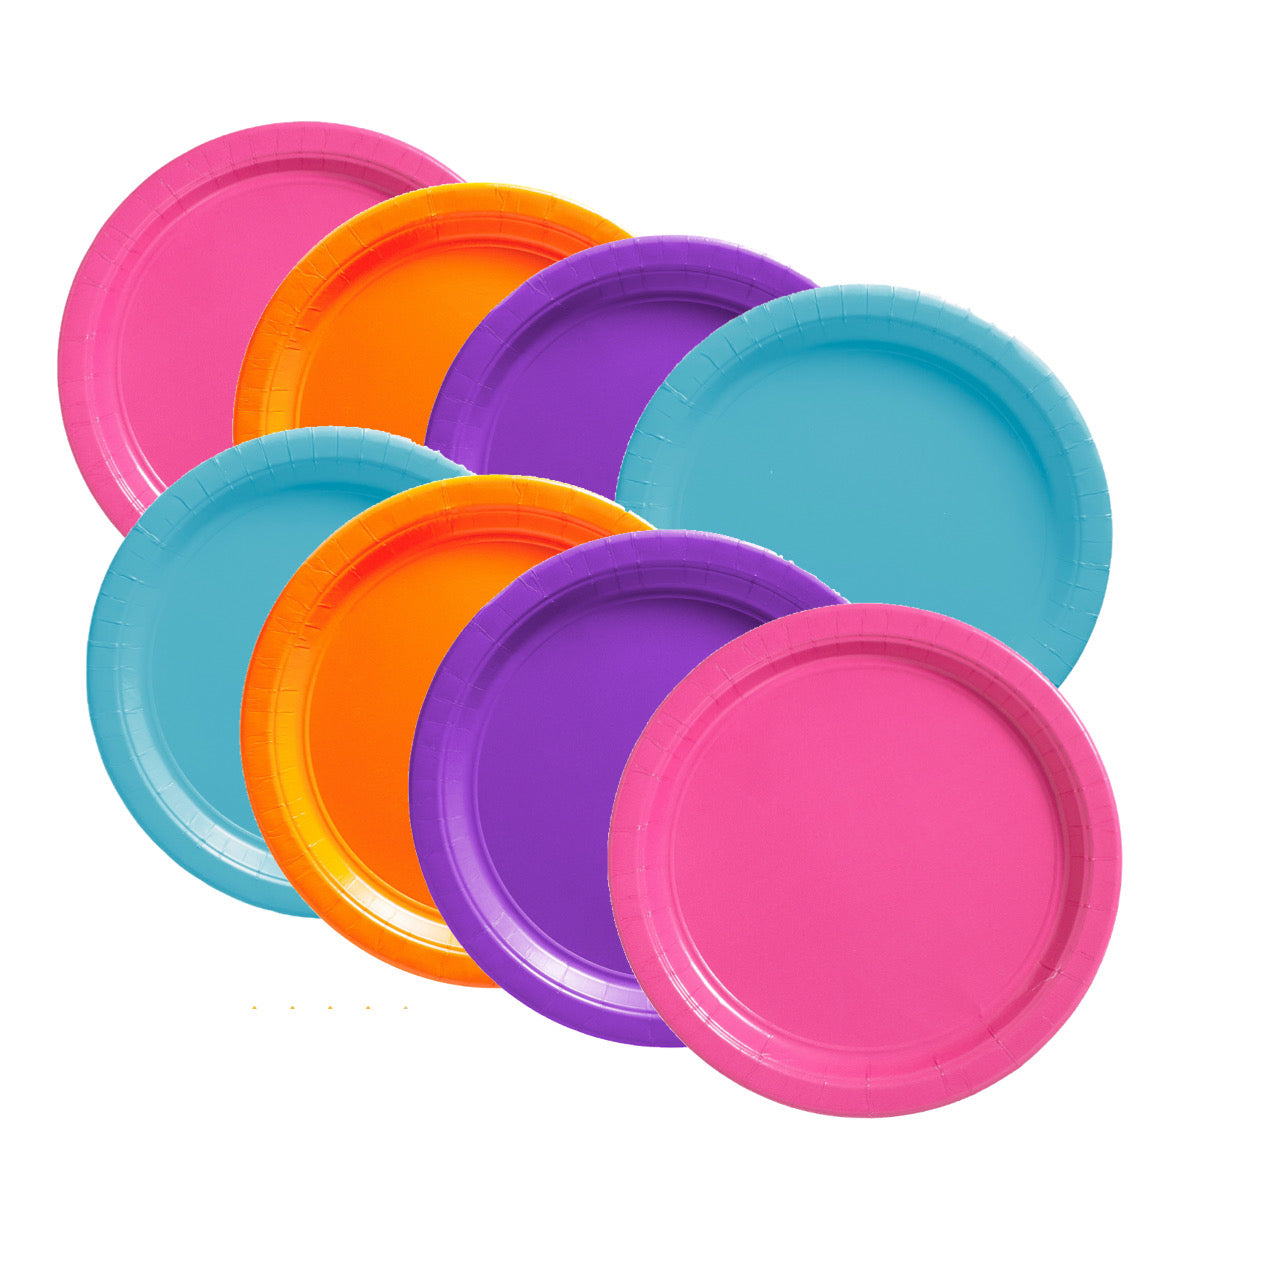 "Pink Purple Orange Teal 7"" Dessert Paper Plates, 8 piece"